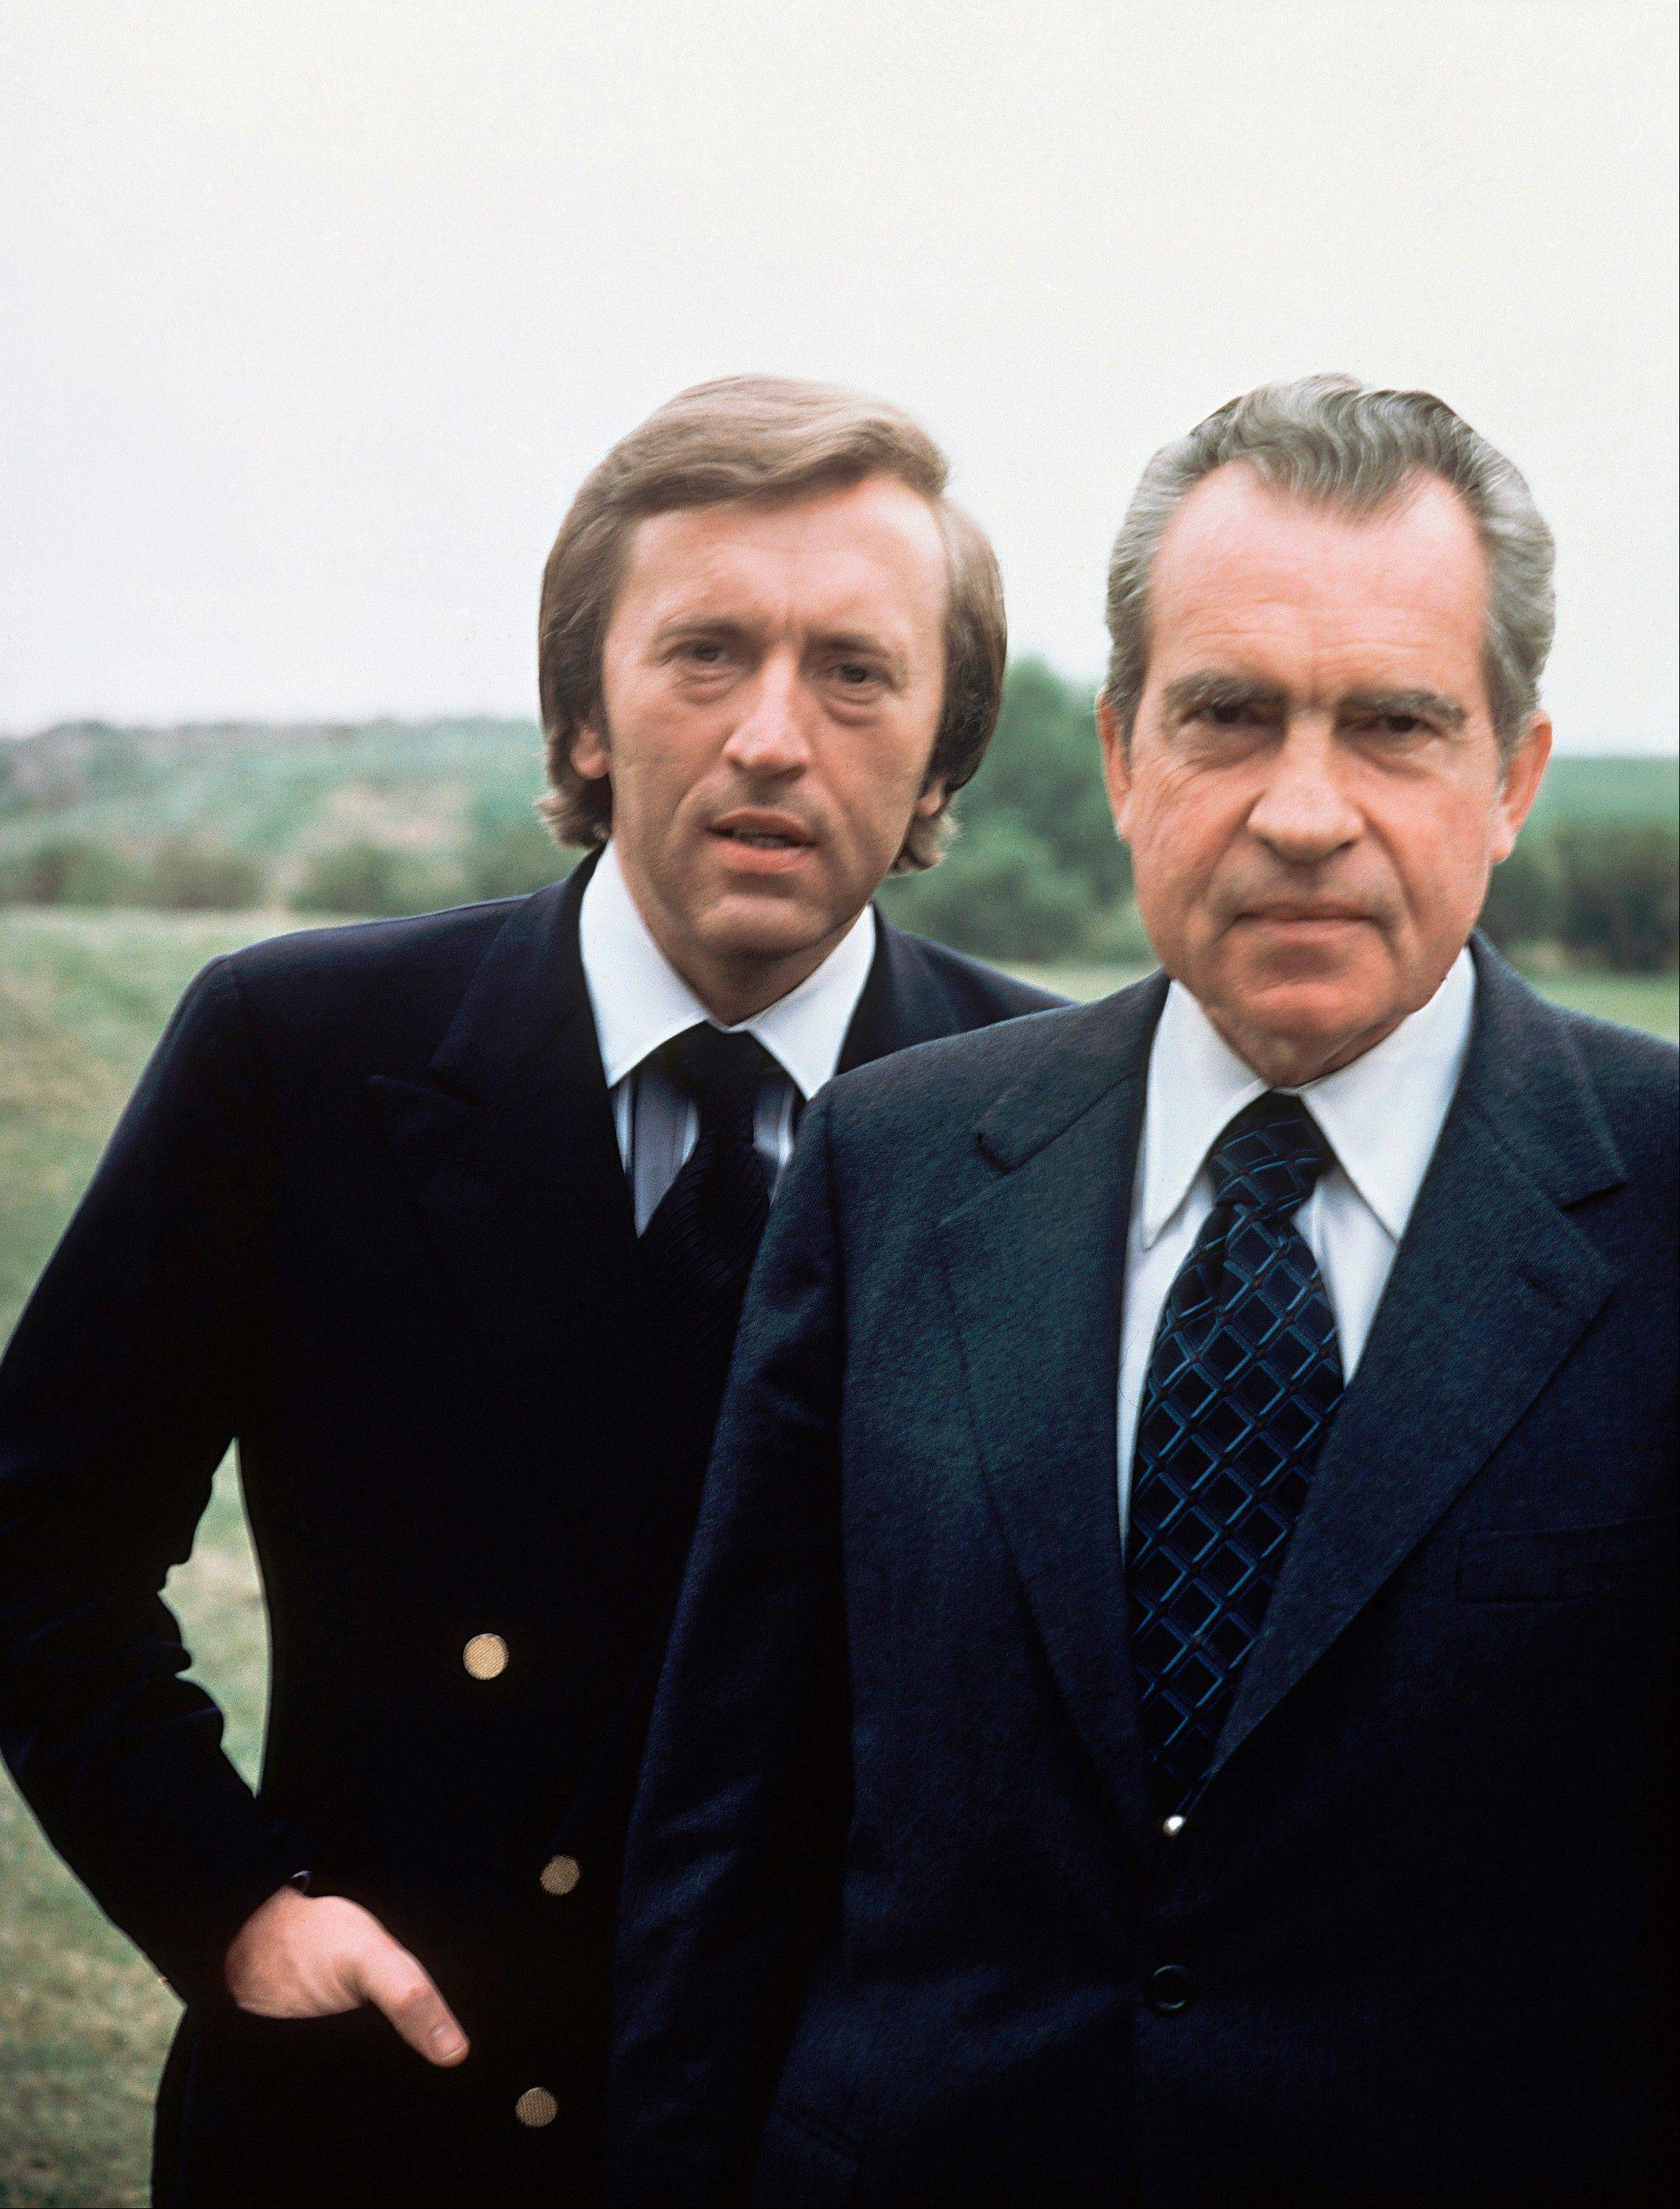 Former President Richard M. Nixon, right, with broadcaster David Frost are seen in 1977. Frost has died at the age of 74 his family said in a statement Sunday.